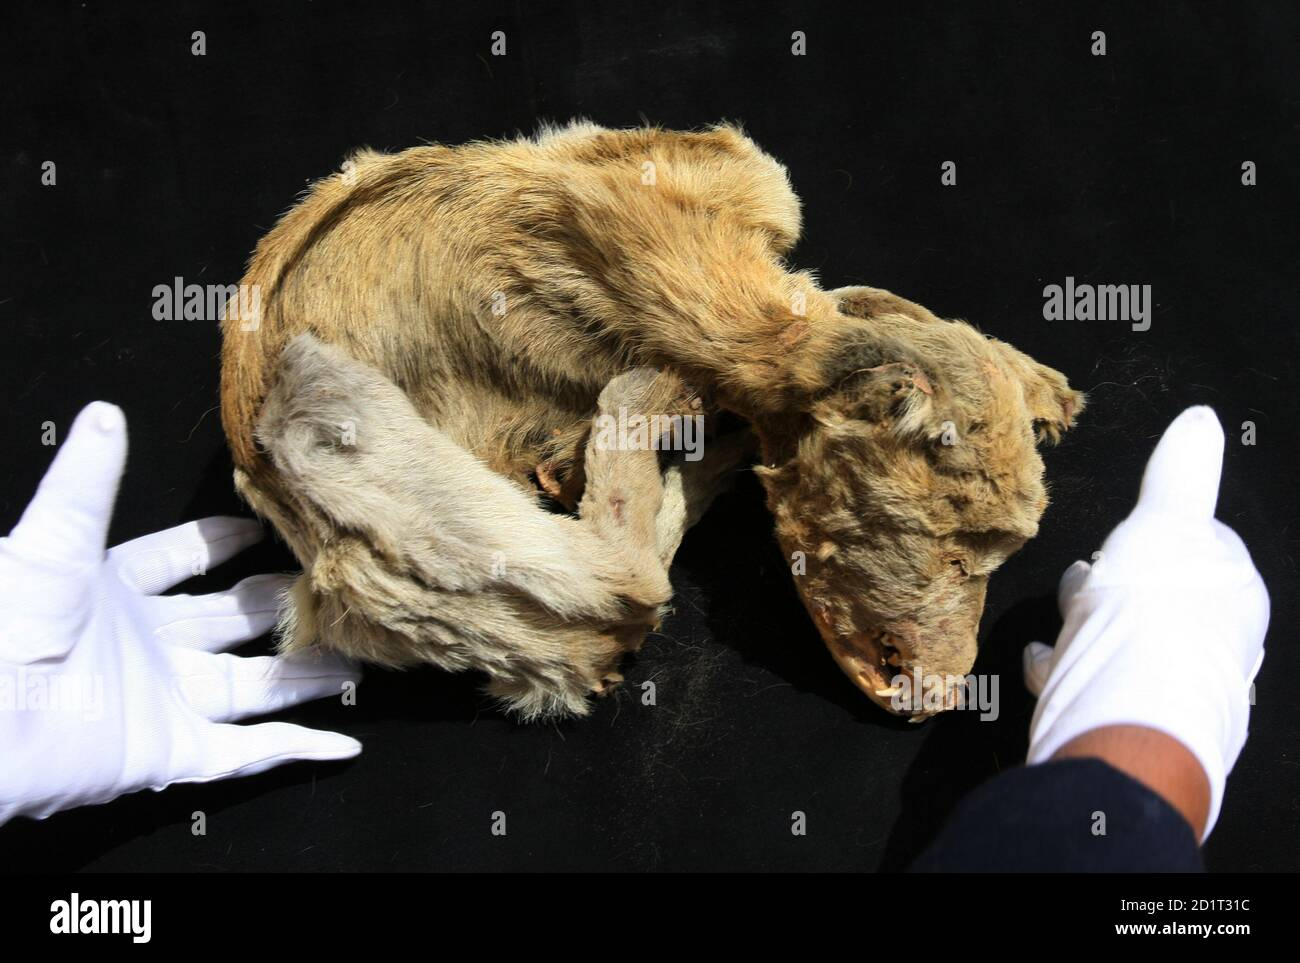 Mummy Dogs High Resolution Stock Photography And Images Alamy How to keep a mummy. https www alamy com a museum worker moves the mummy of a dog dating from between 1100 and 1300 from the chiribaya culture at el algarrobal museum near the port of ilo in southern peru september 12 2006 the dogs which helped in herding llamas in the pre hispanic culture that predated the incas were given special treatment when they died their mummified bodies were given their own burial with food and blankets to keep them warm in the afterlife reutersmariana bazo peru image379771992 html